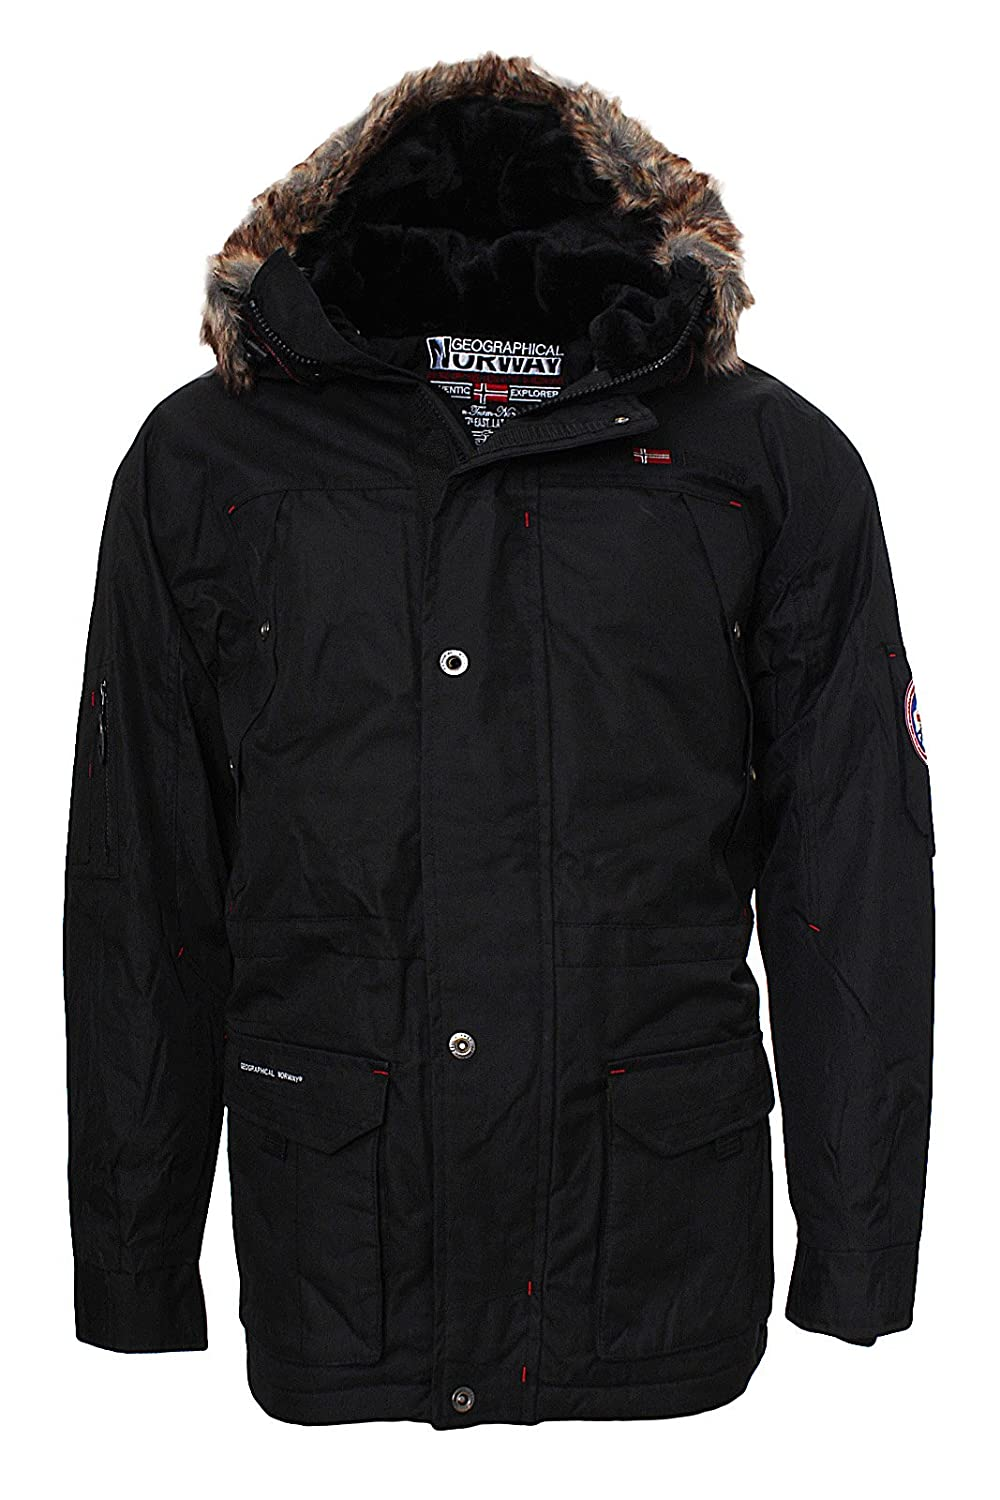 GEOGRAPHICAL NORWAY OUTDOOR PARKA Mantel Polar Alaska Neu